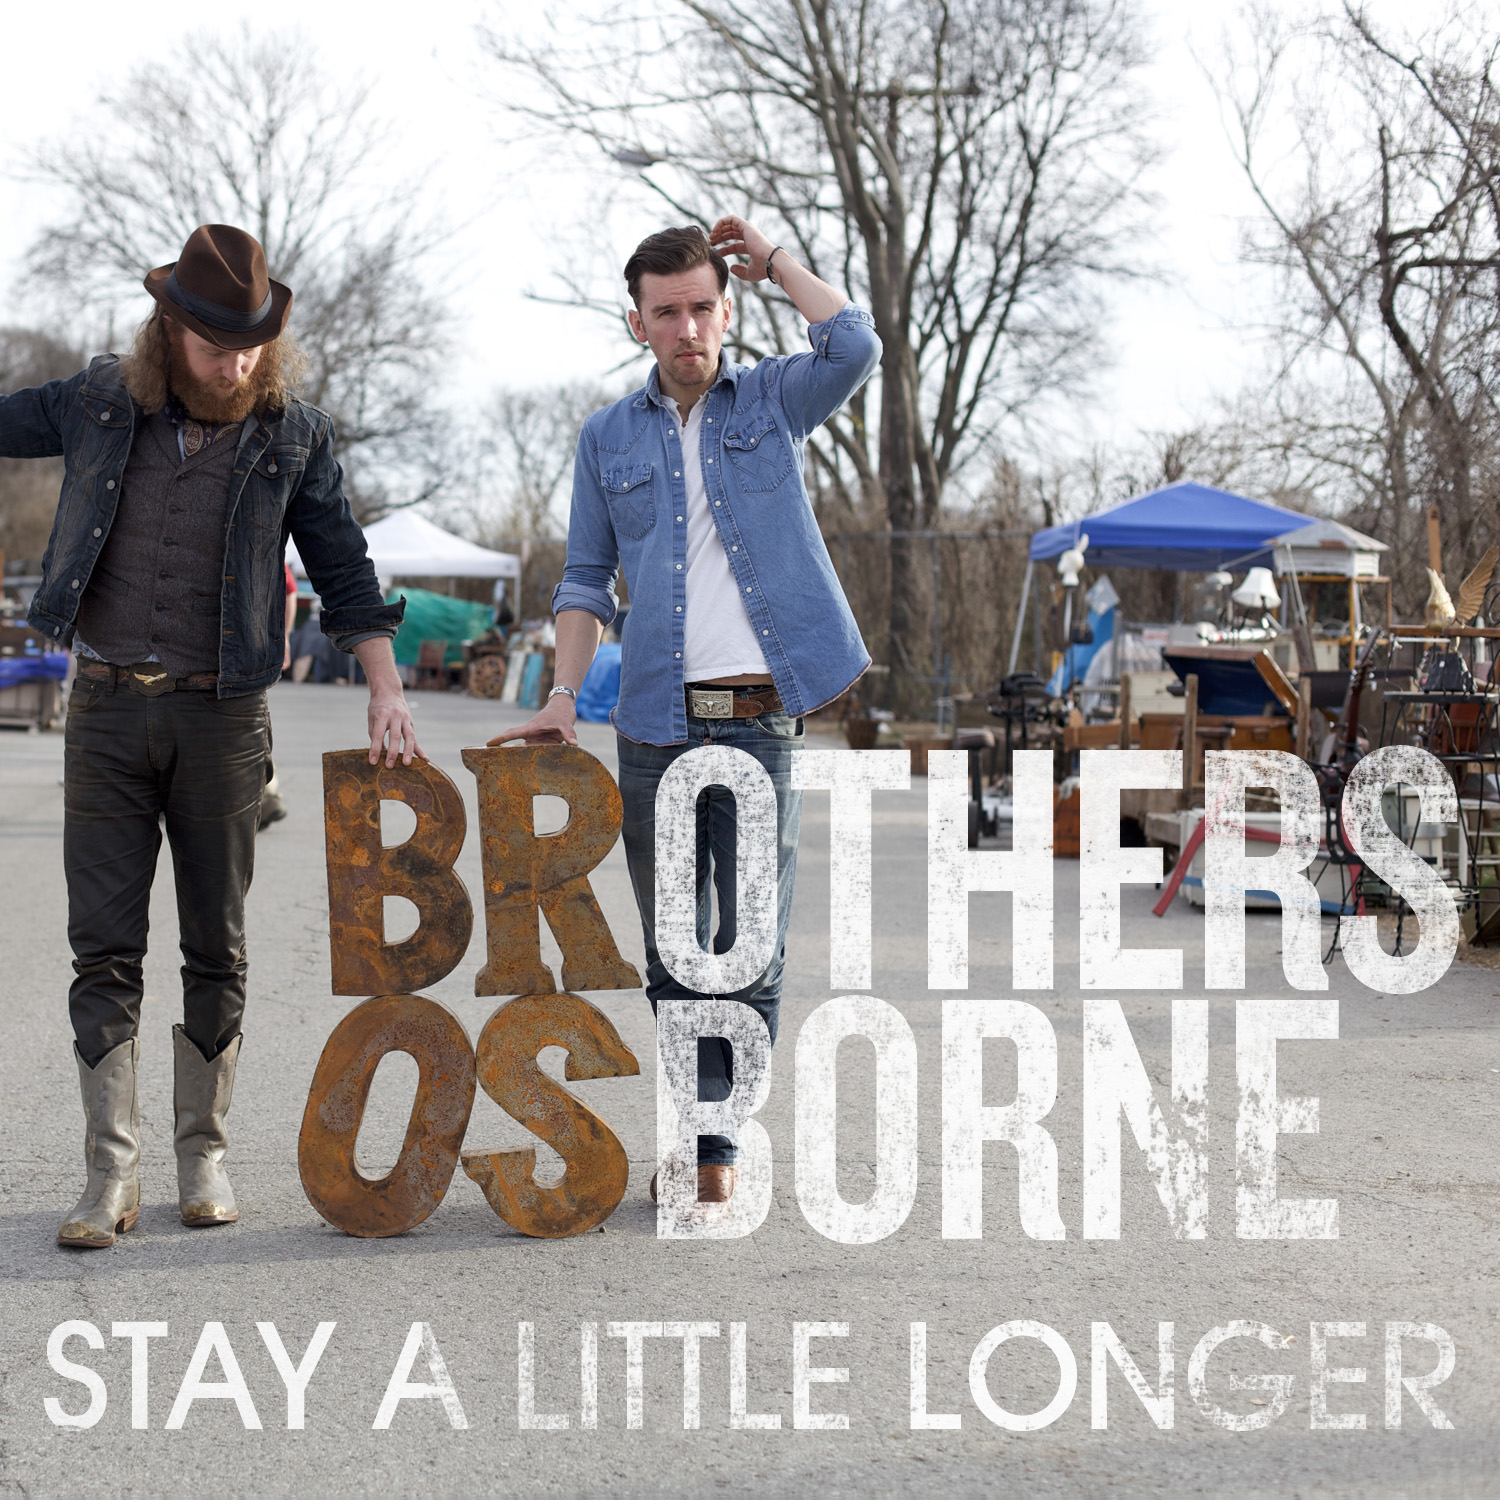 Brothers Osborne - Stay a Little Longer